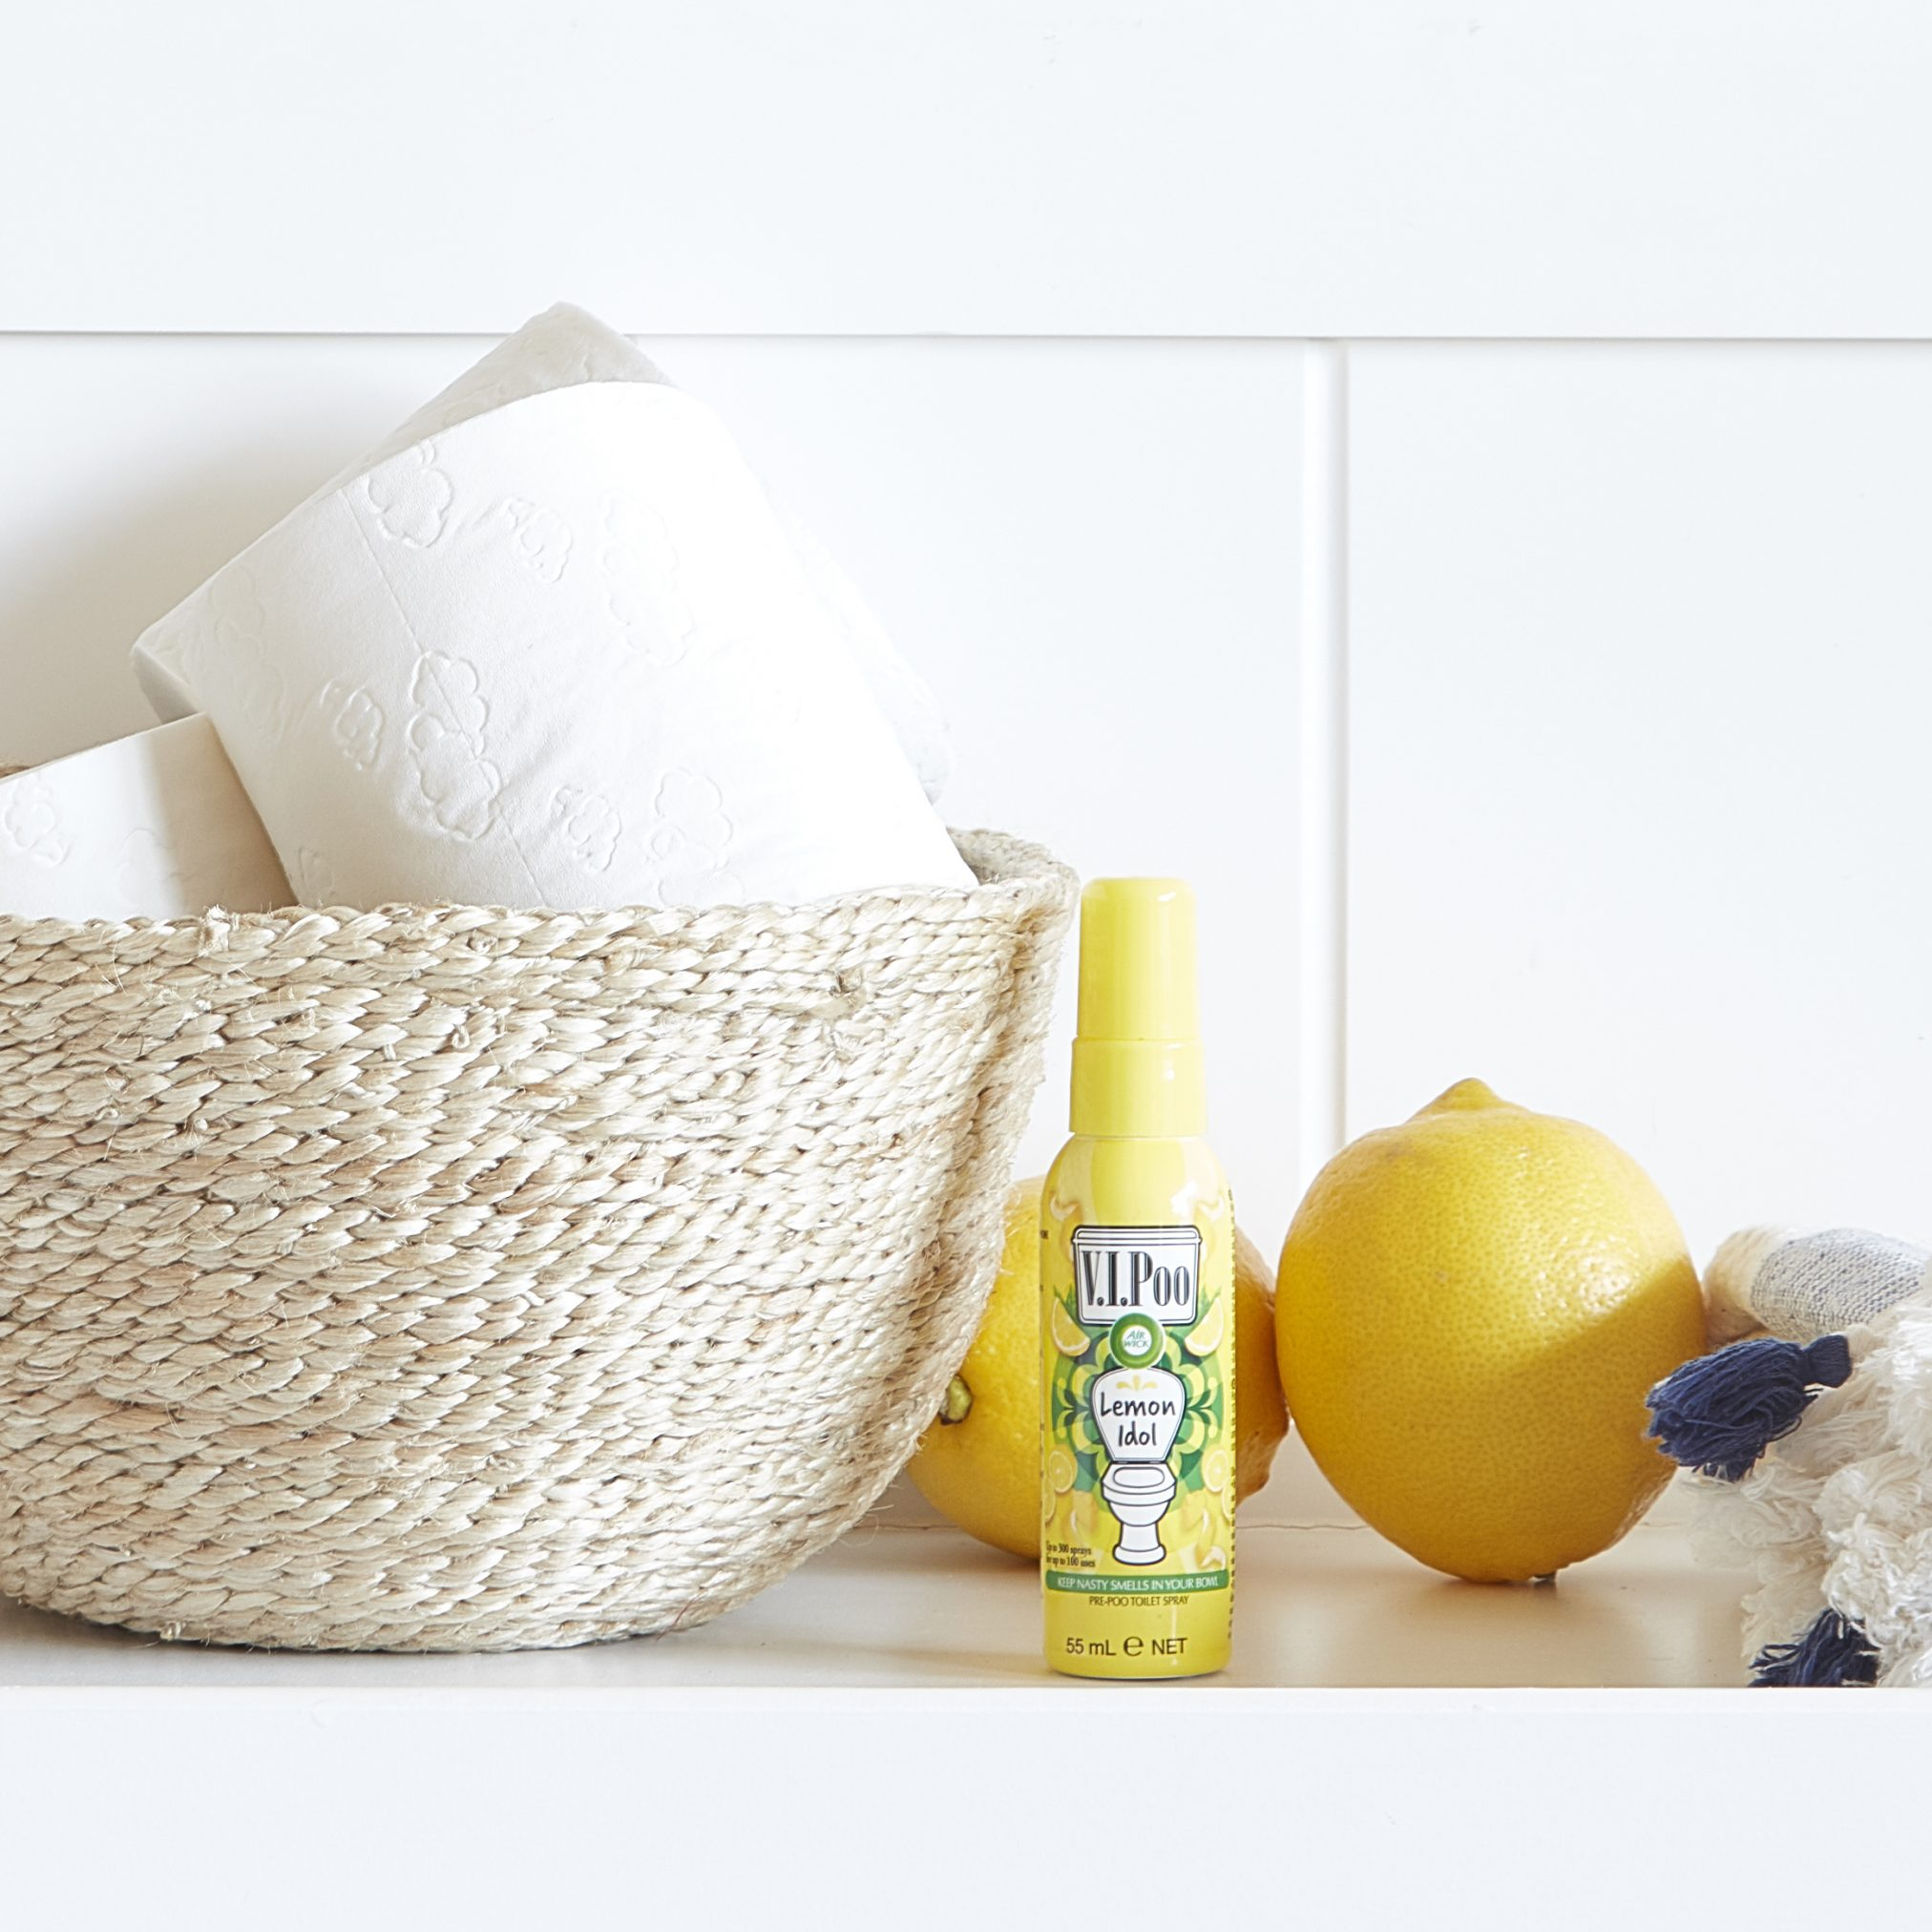 VIPoo spray and toilet roll basket